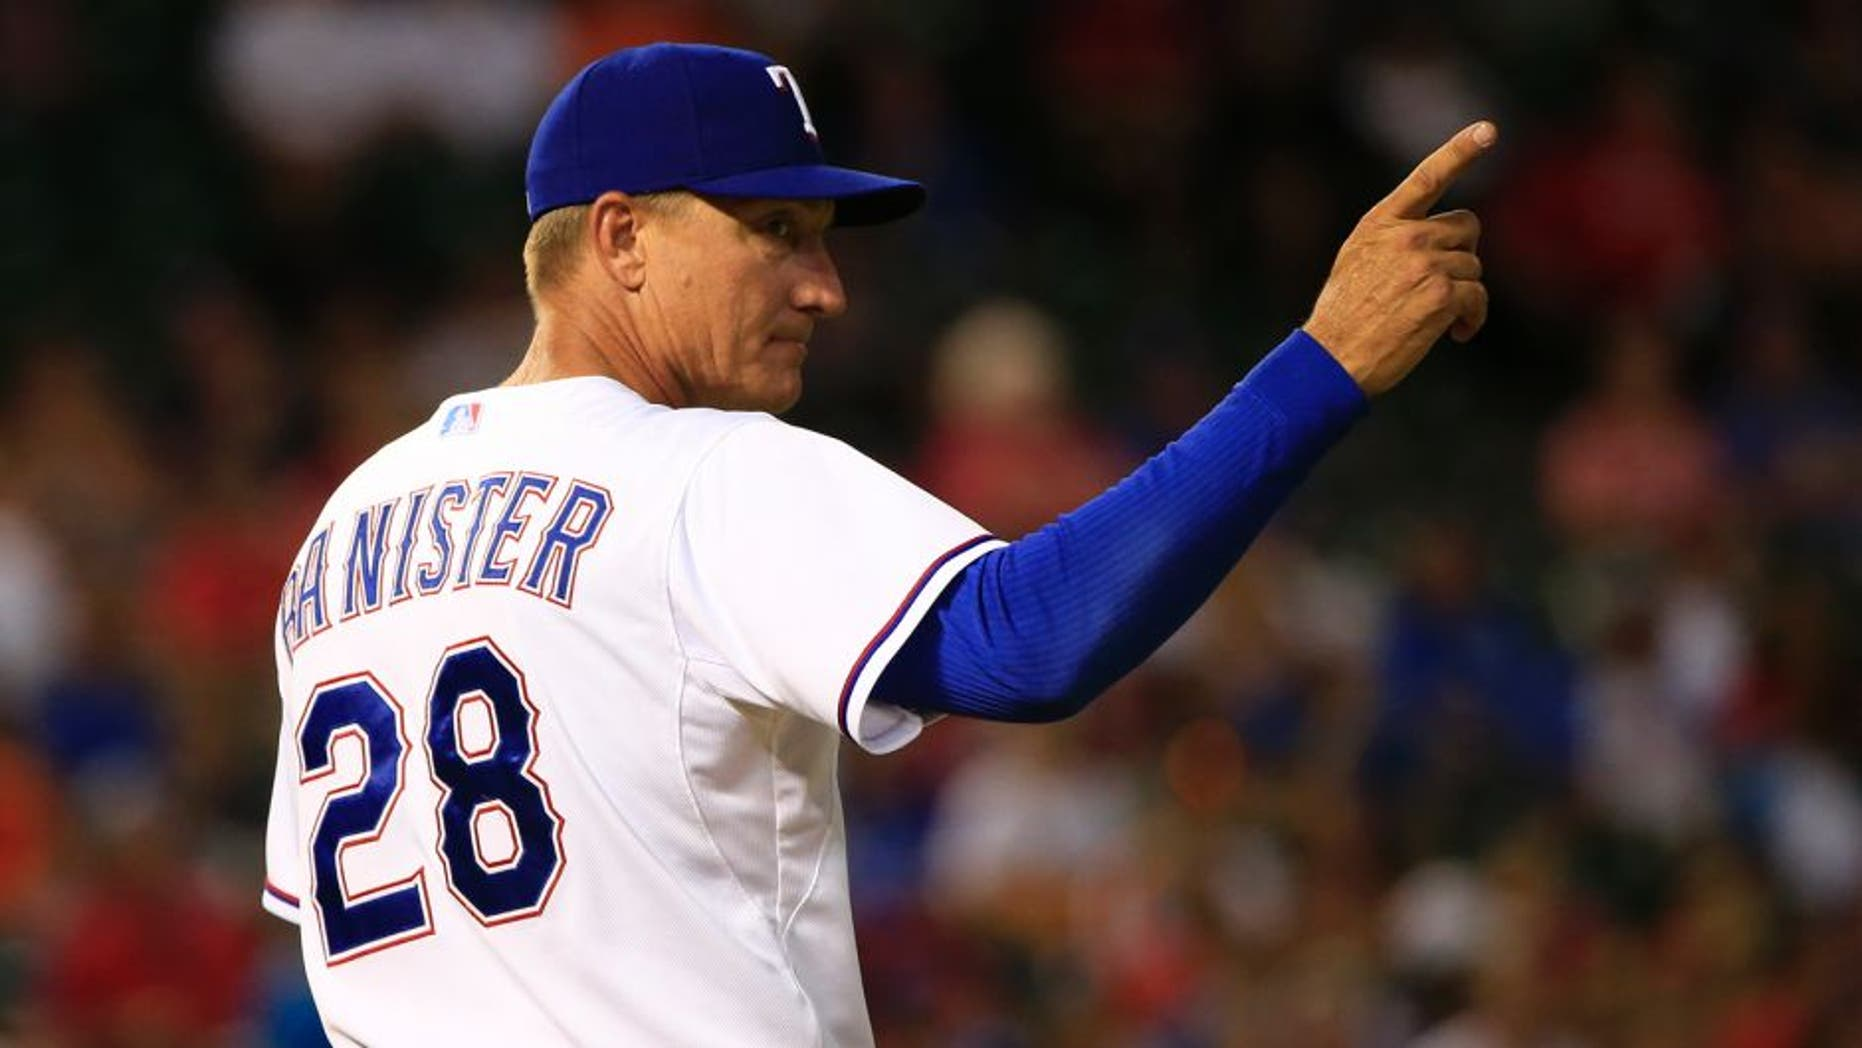 Aug 3, 2015; Arlington, TX, USA; Texas Rangers manager Jeff Banister (28) makes a pitching change during the game against the Houston Astros at Globe Life Park in Arlington. Mandatory Credit: Kevin Jairaj-USA TODAY Sports